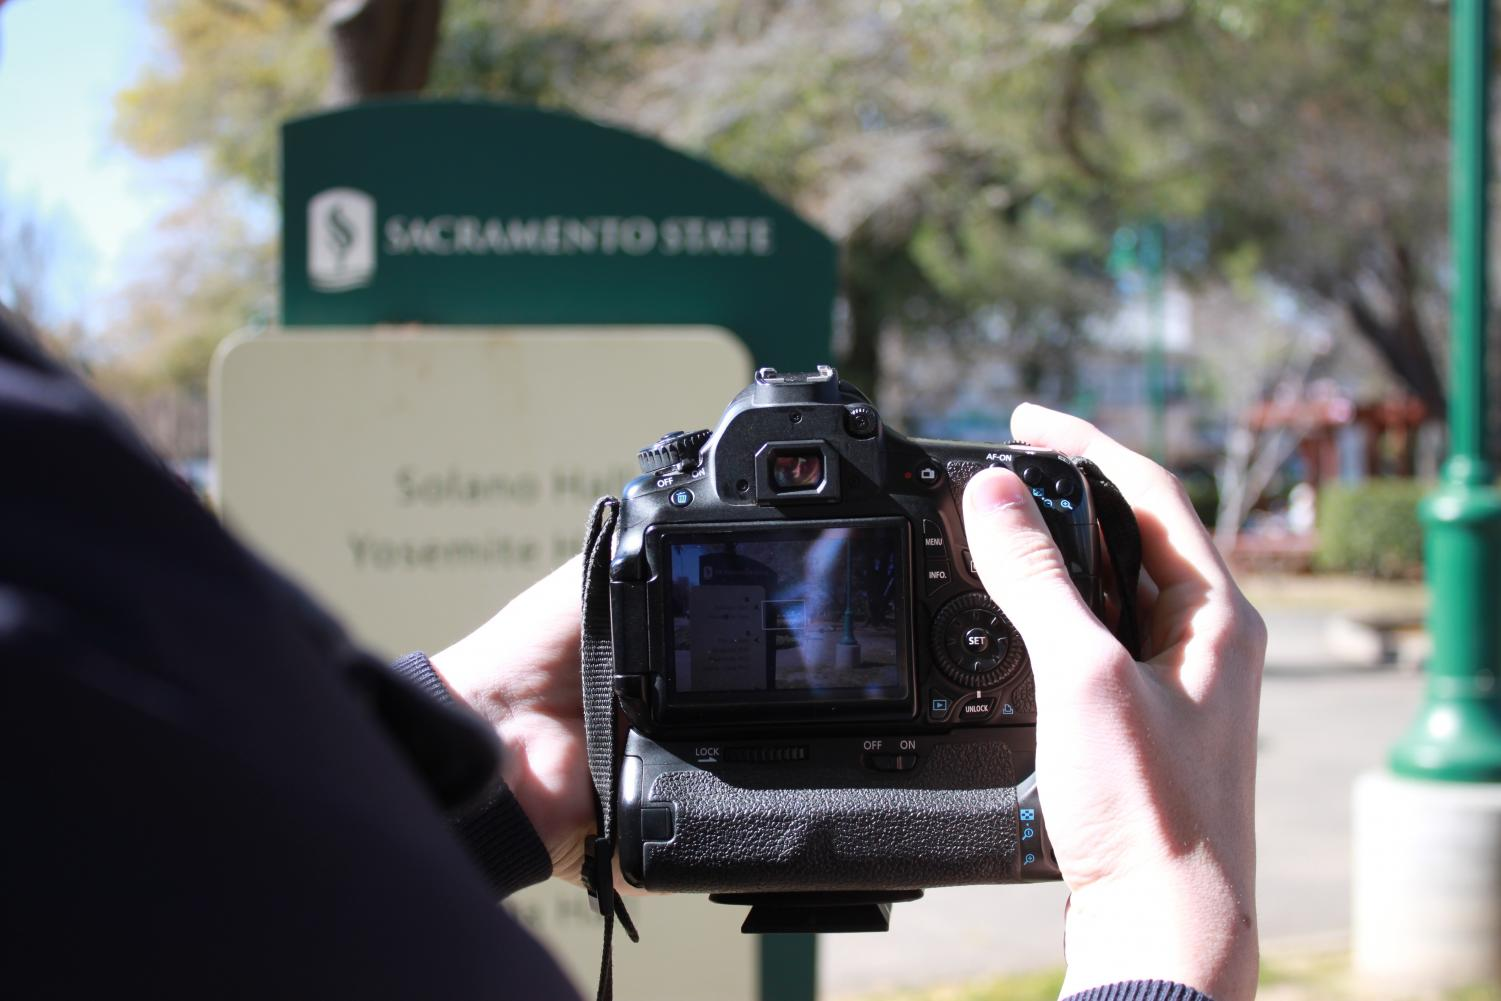 Sacramento State is revisiting its new campus media production policy, which technically could have applied even to students filming on their smartphones, after concerns were raised that the policy is unconstitutional.